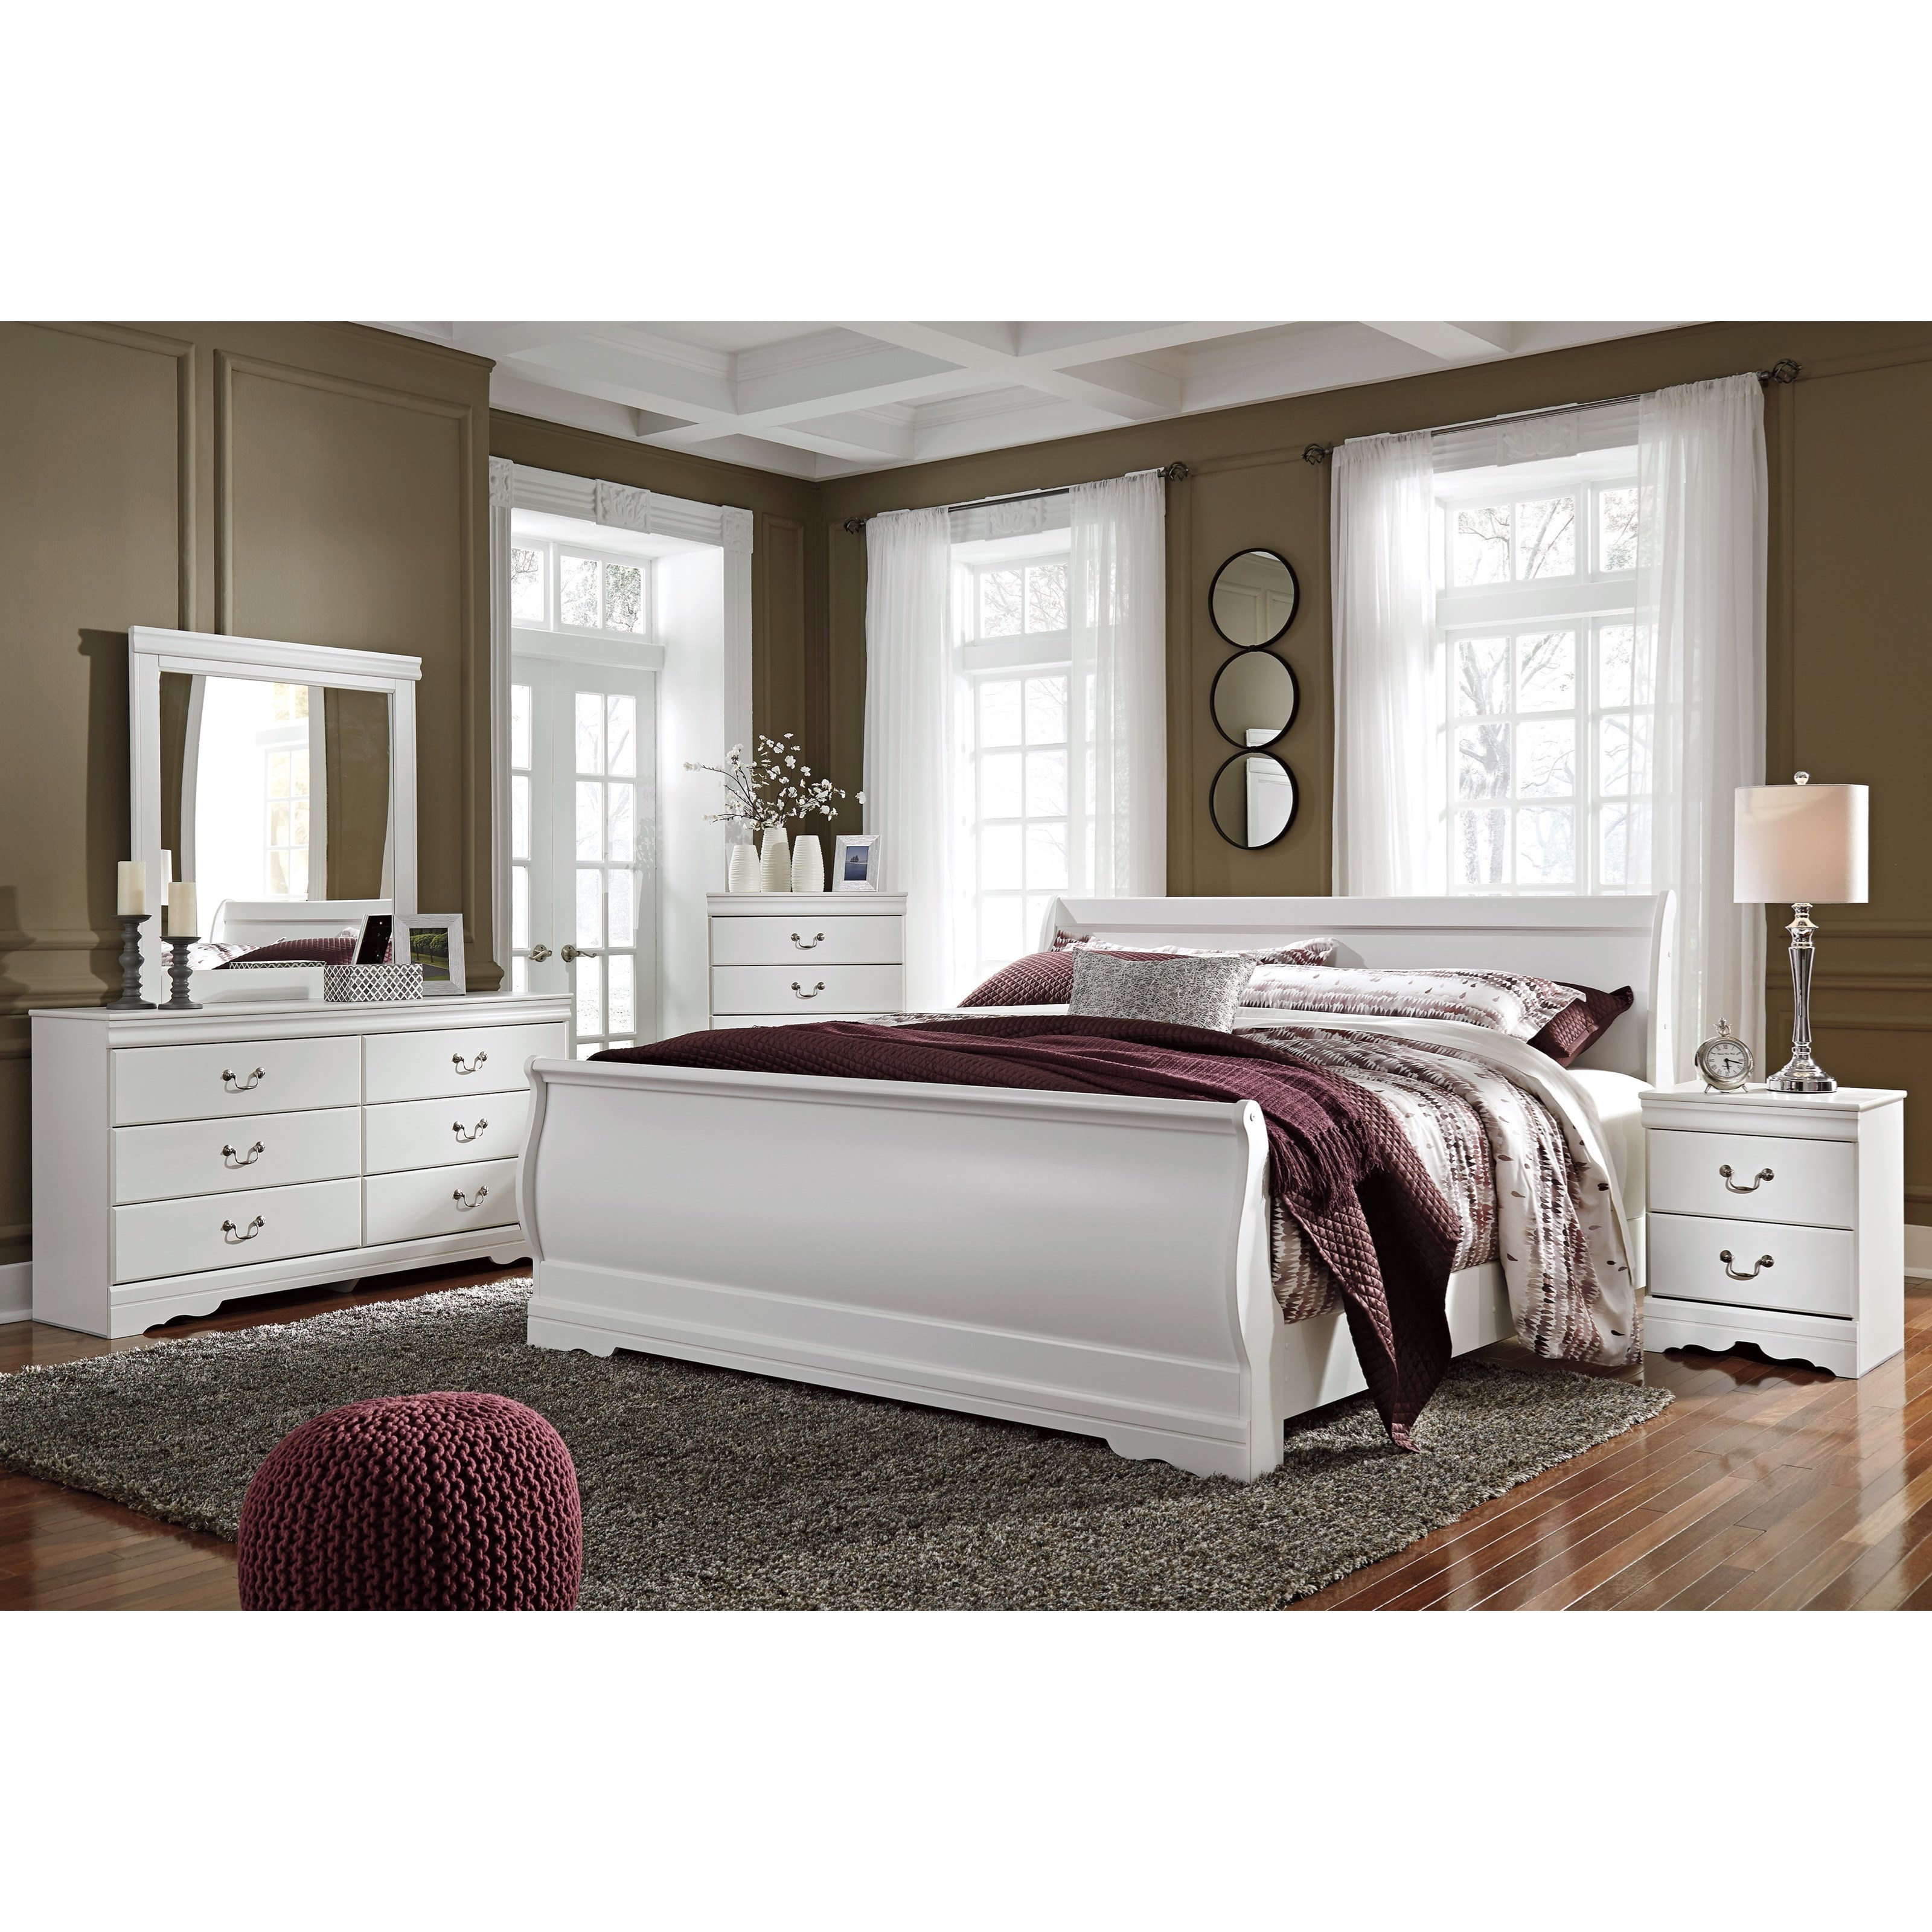 Anarasia 4-Piece Bedroom Group by Signature Design by Ashley at Northeast Factory Direct